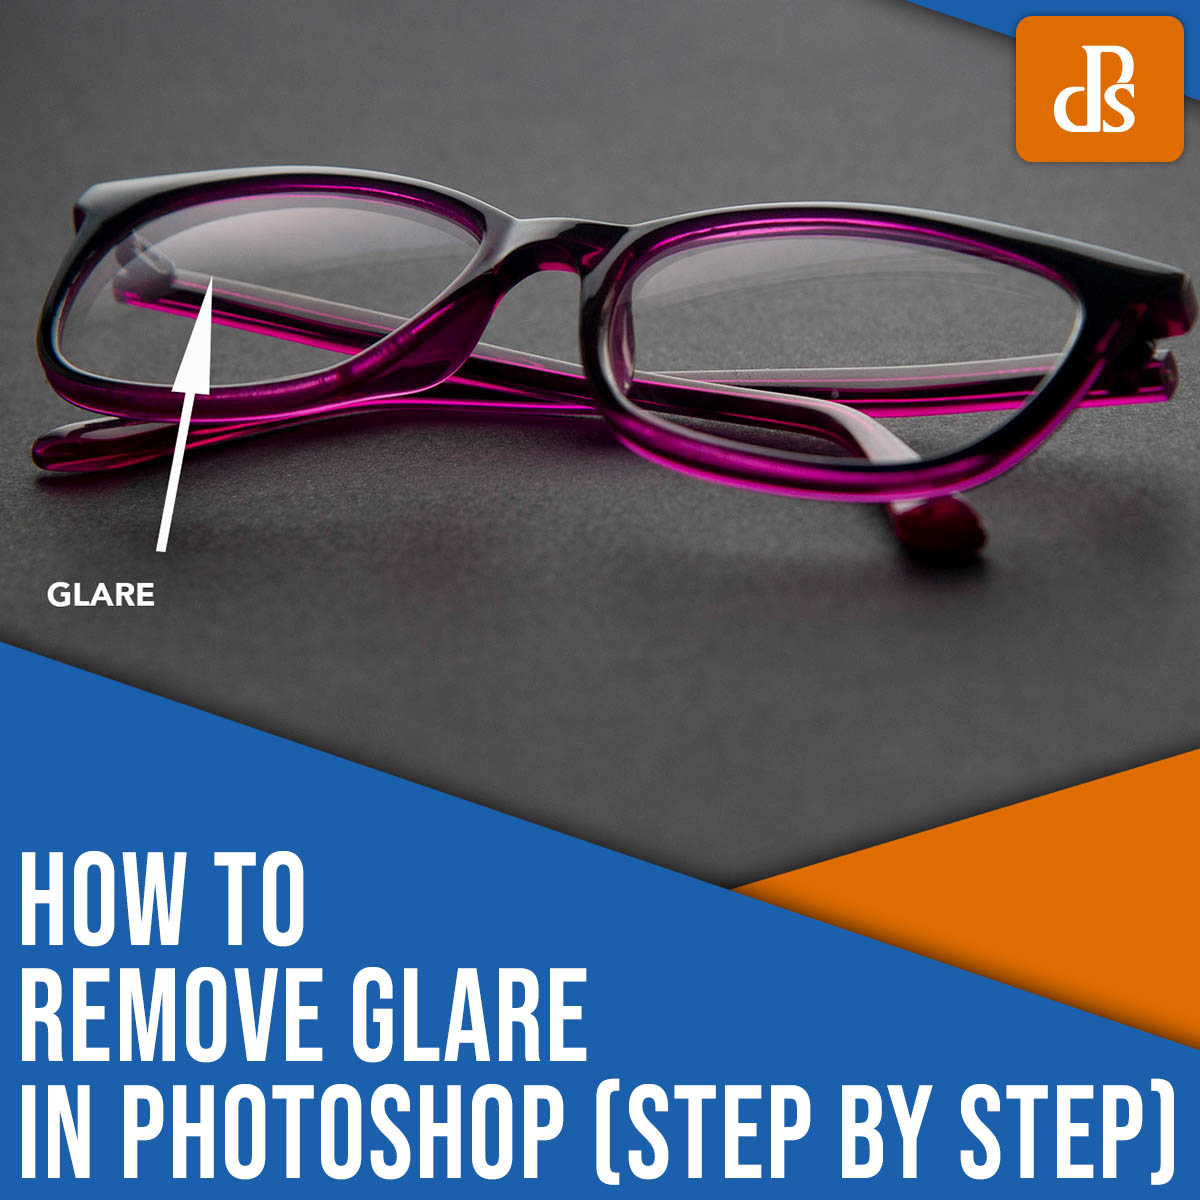 How to Remove Glare in Photoshop: A Step-By-Step Guide